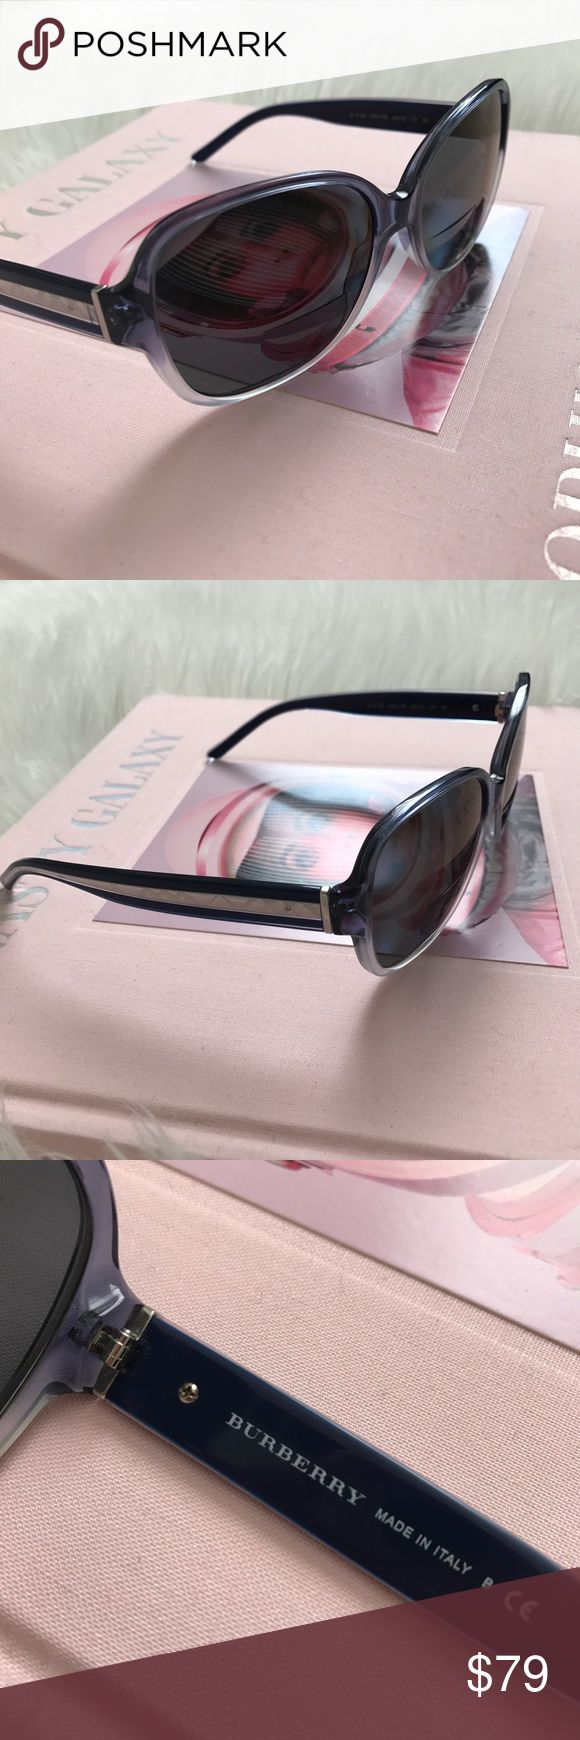 BURBERRY SUNGLASSES NAVY ROUND GLASSES Super glam, these navy authentic Burberry sunglasses. They do have a prescription in them but easily interchangeable with your personal prescription or regular lenses. Fantastic pair of glasses, made in Italy. Gently used. Burberry Accessories Sunglasses